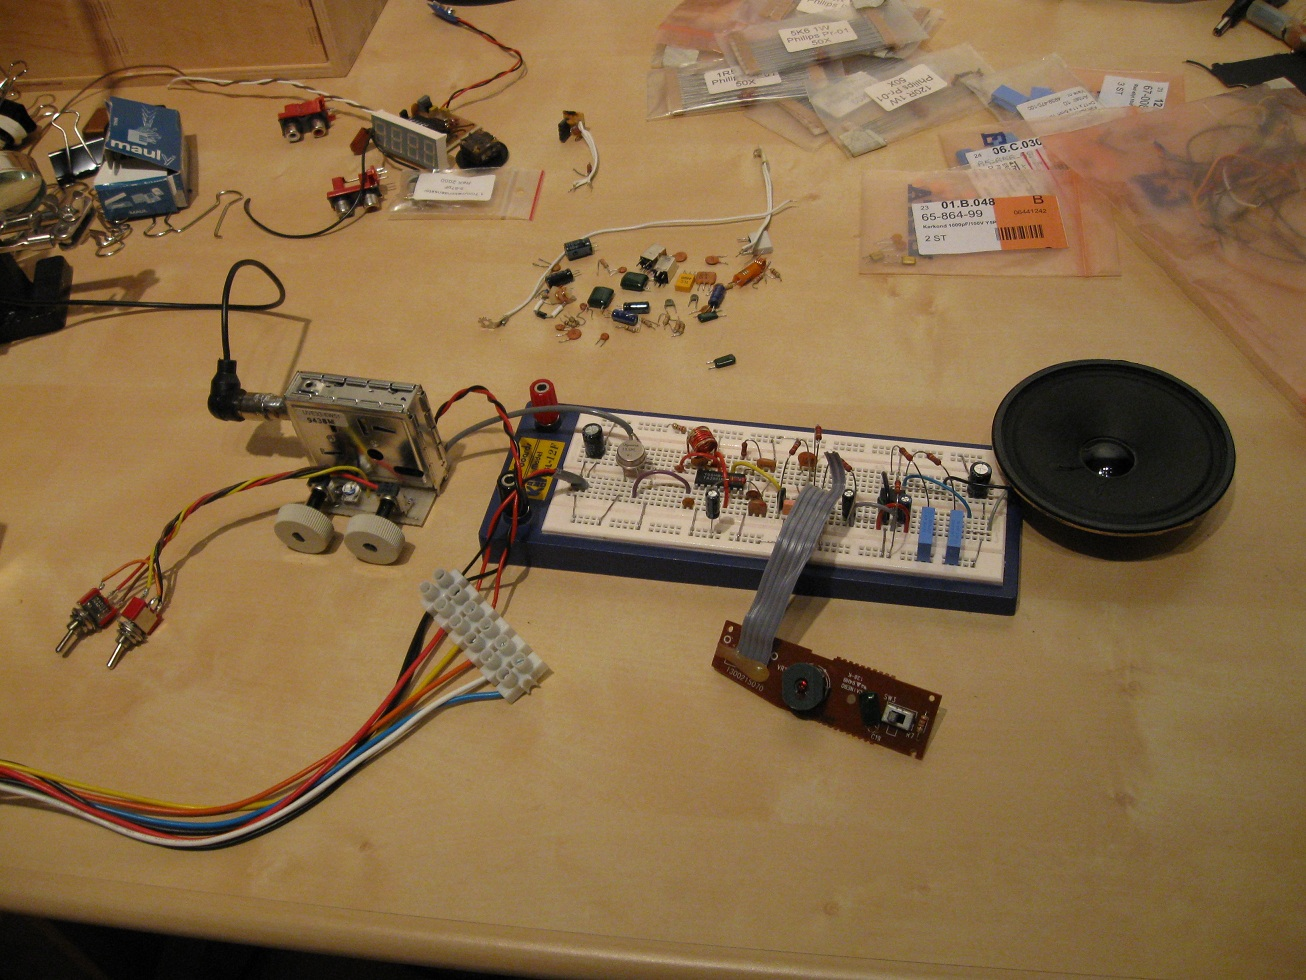 Prototyped SDR radio